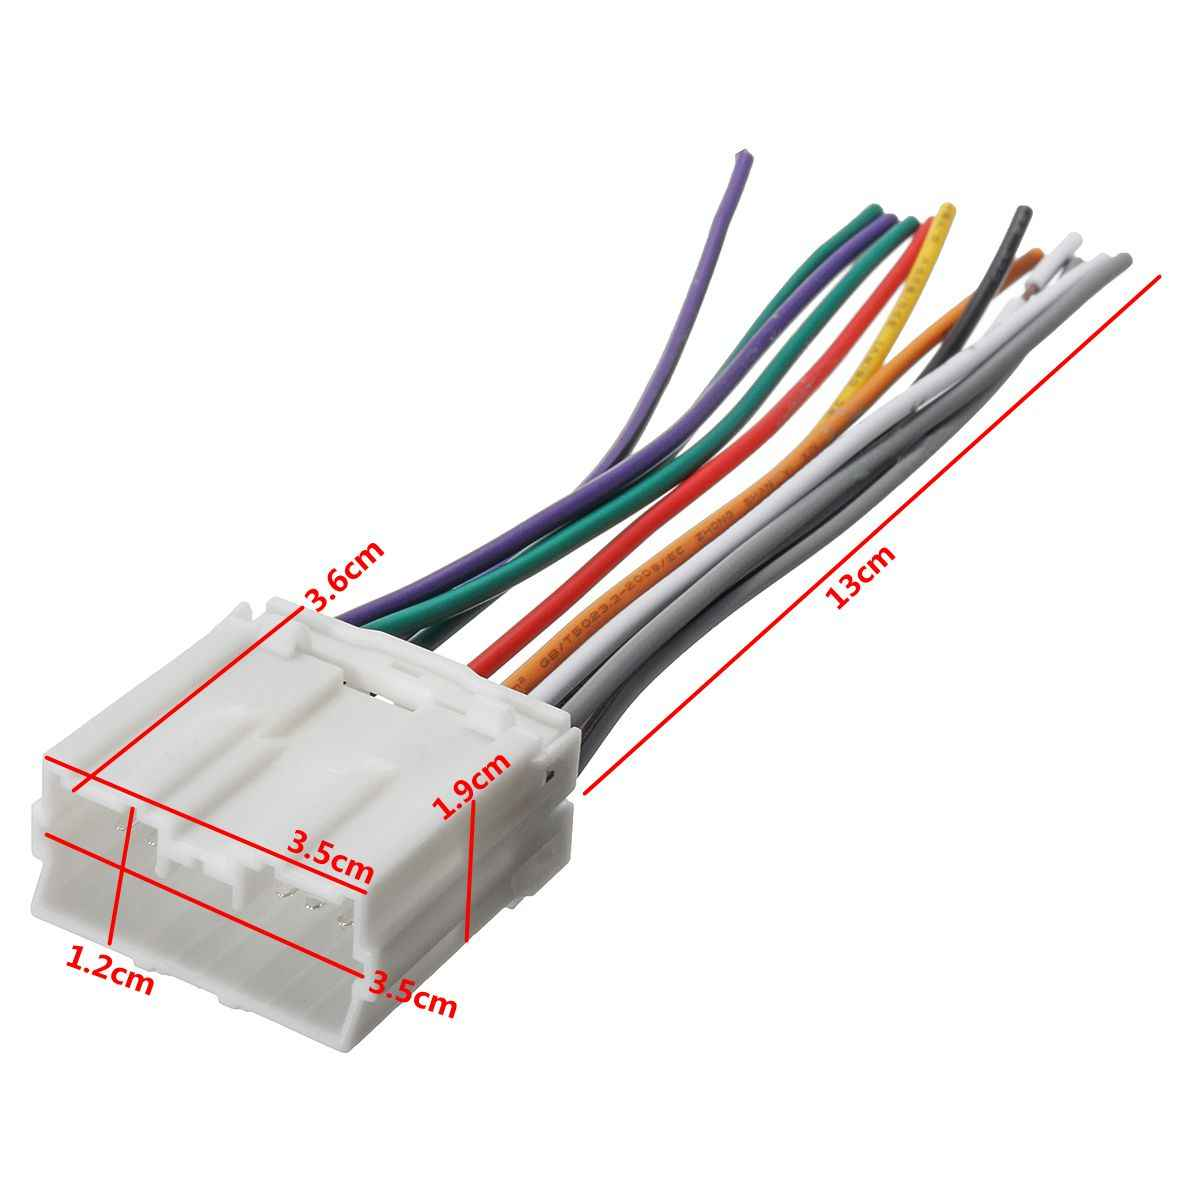 Wiring Harness For Car Stereo - Wiring Diagram Srconds on